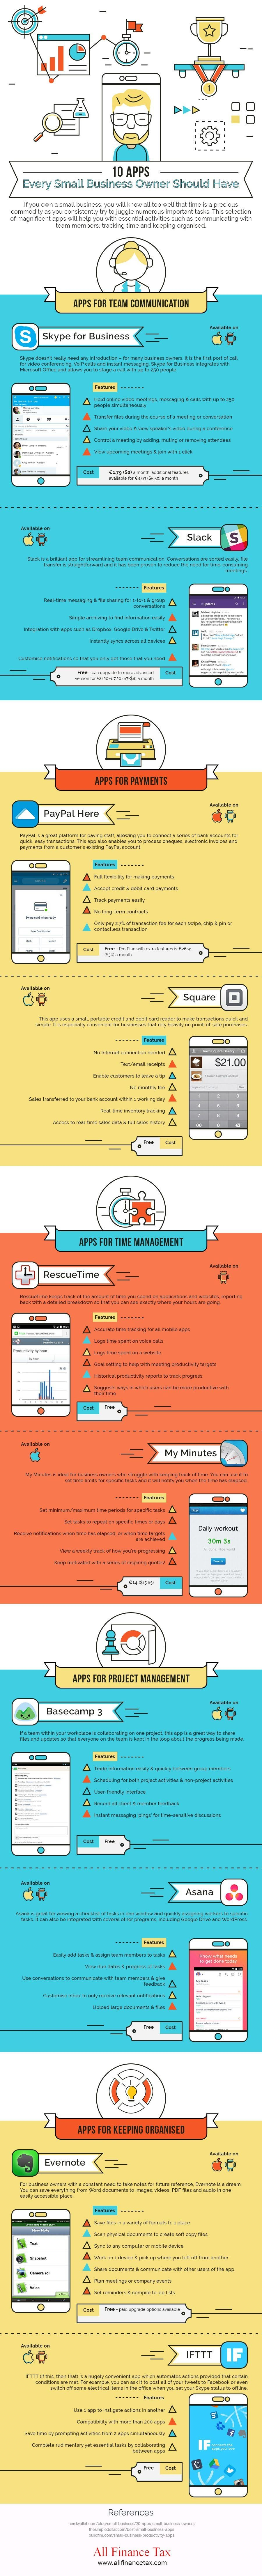 10 Apps Every Small Business Owner Should Have #infographic